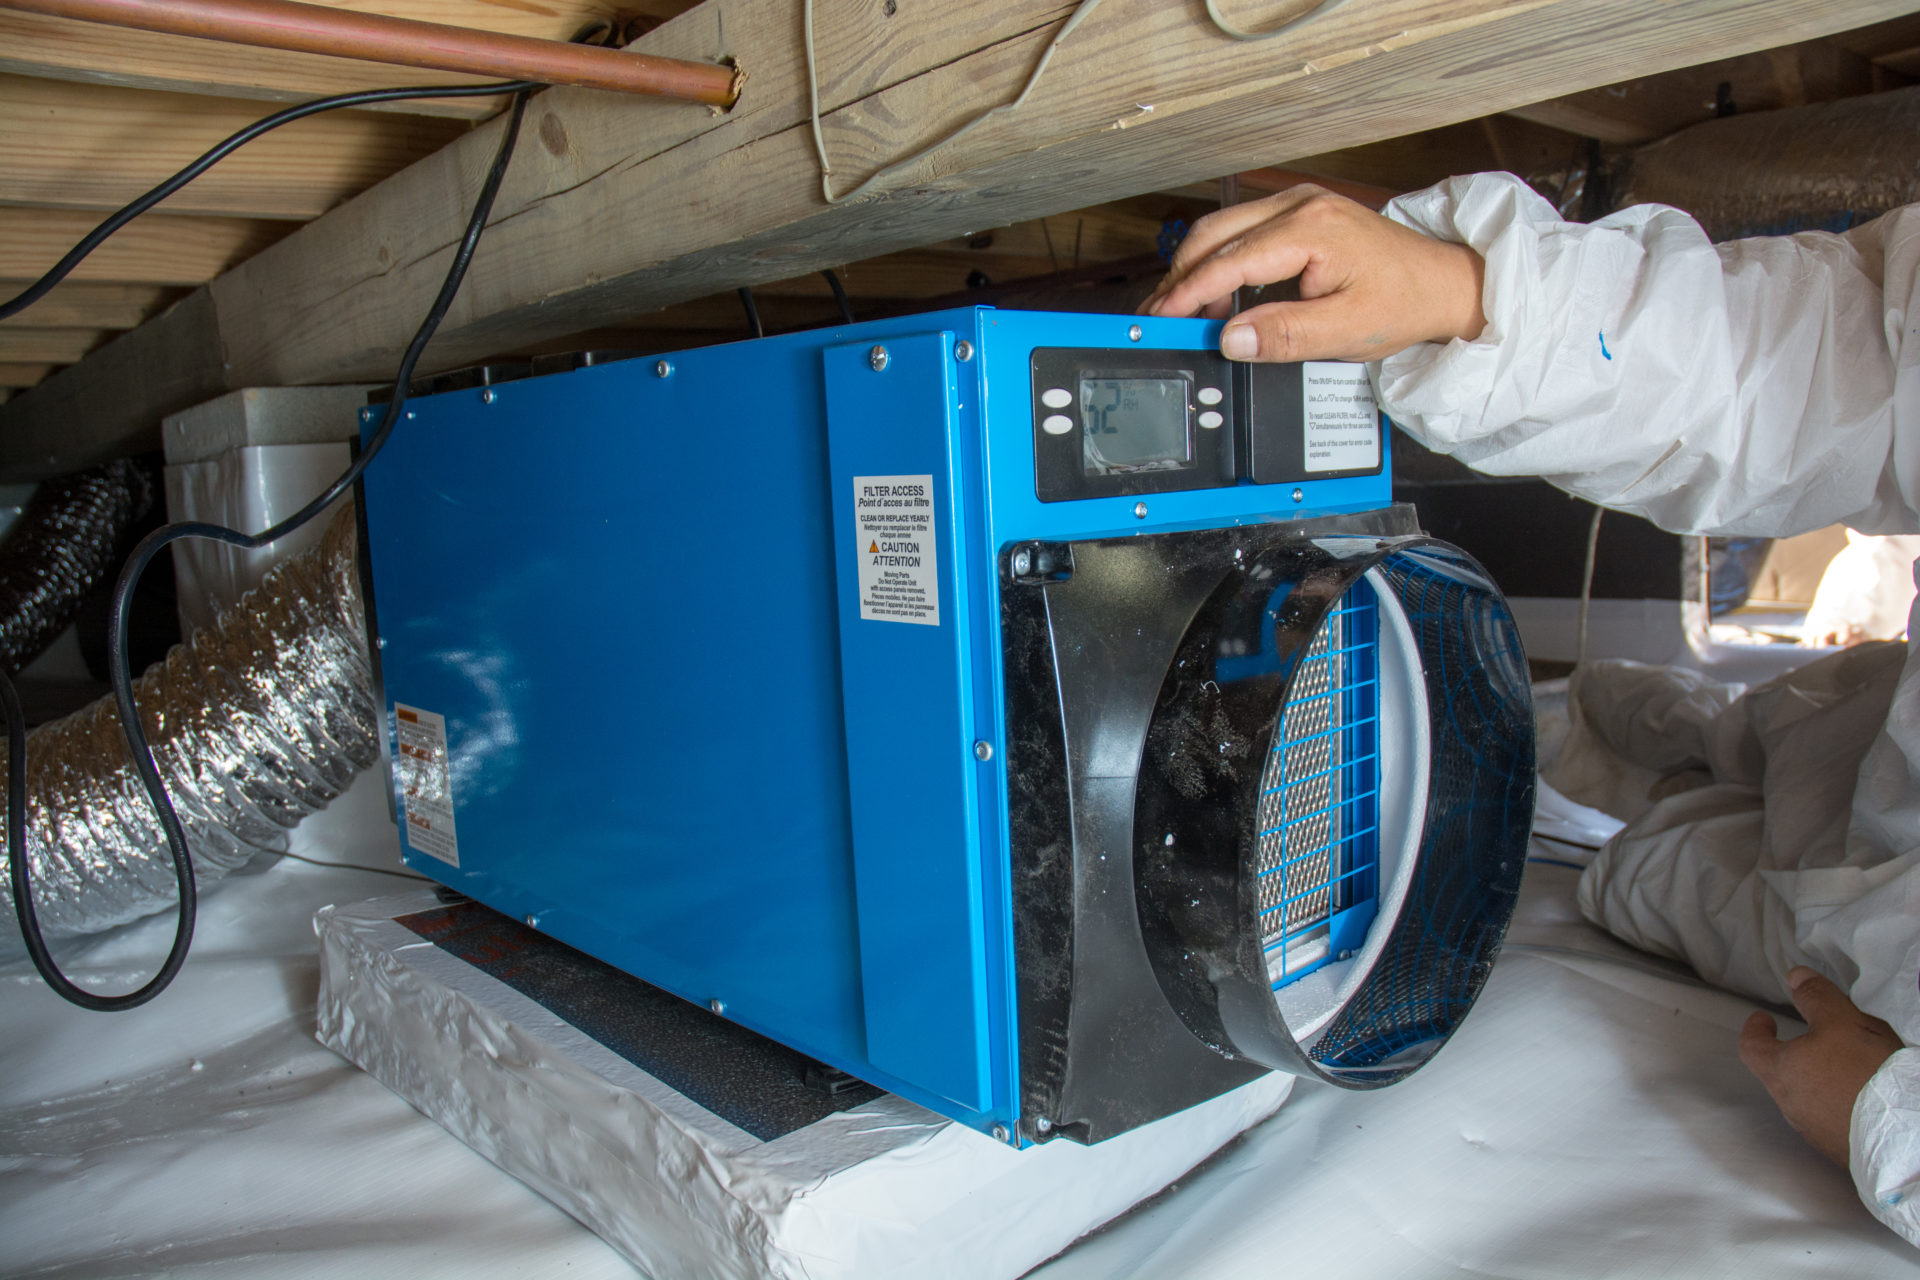 Crawl space fan system